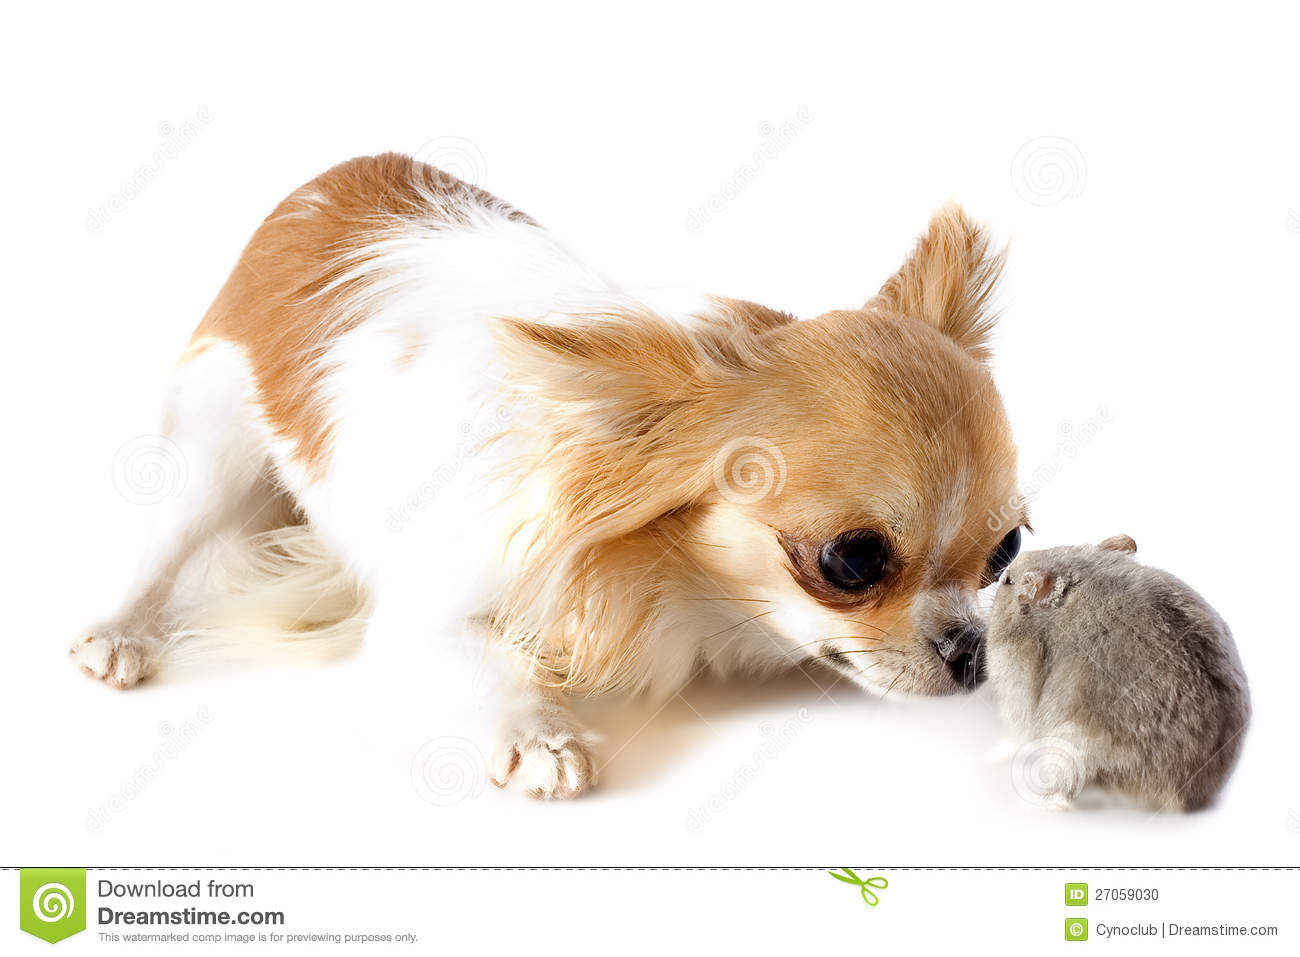 ... chihuahua and Djungarian hamster in front of white background